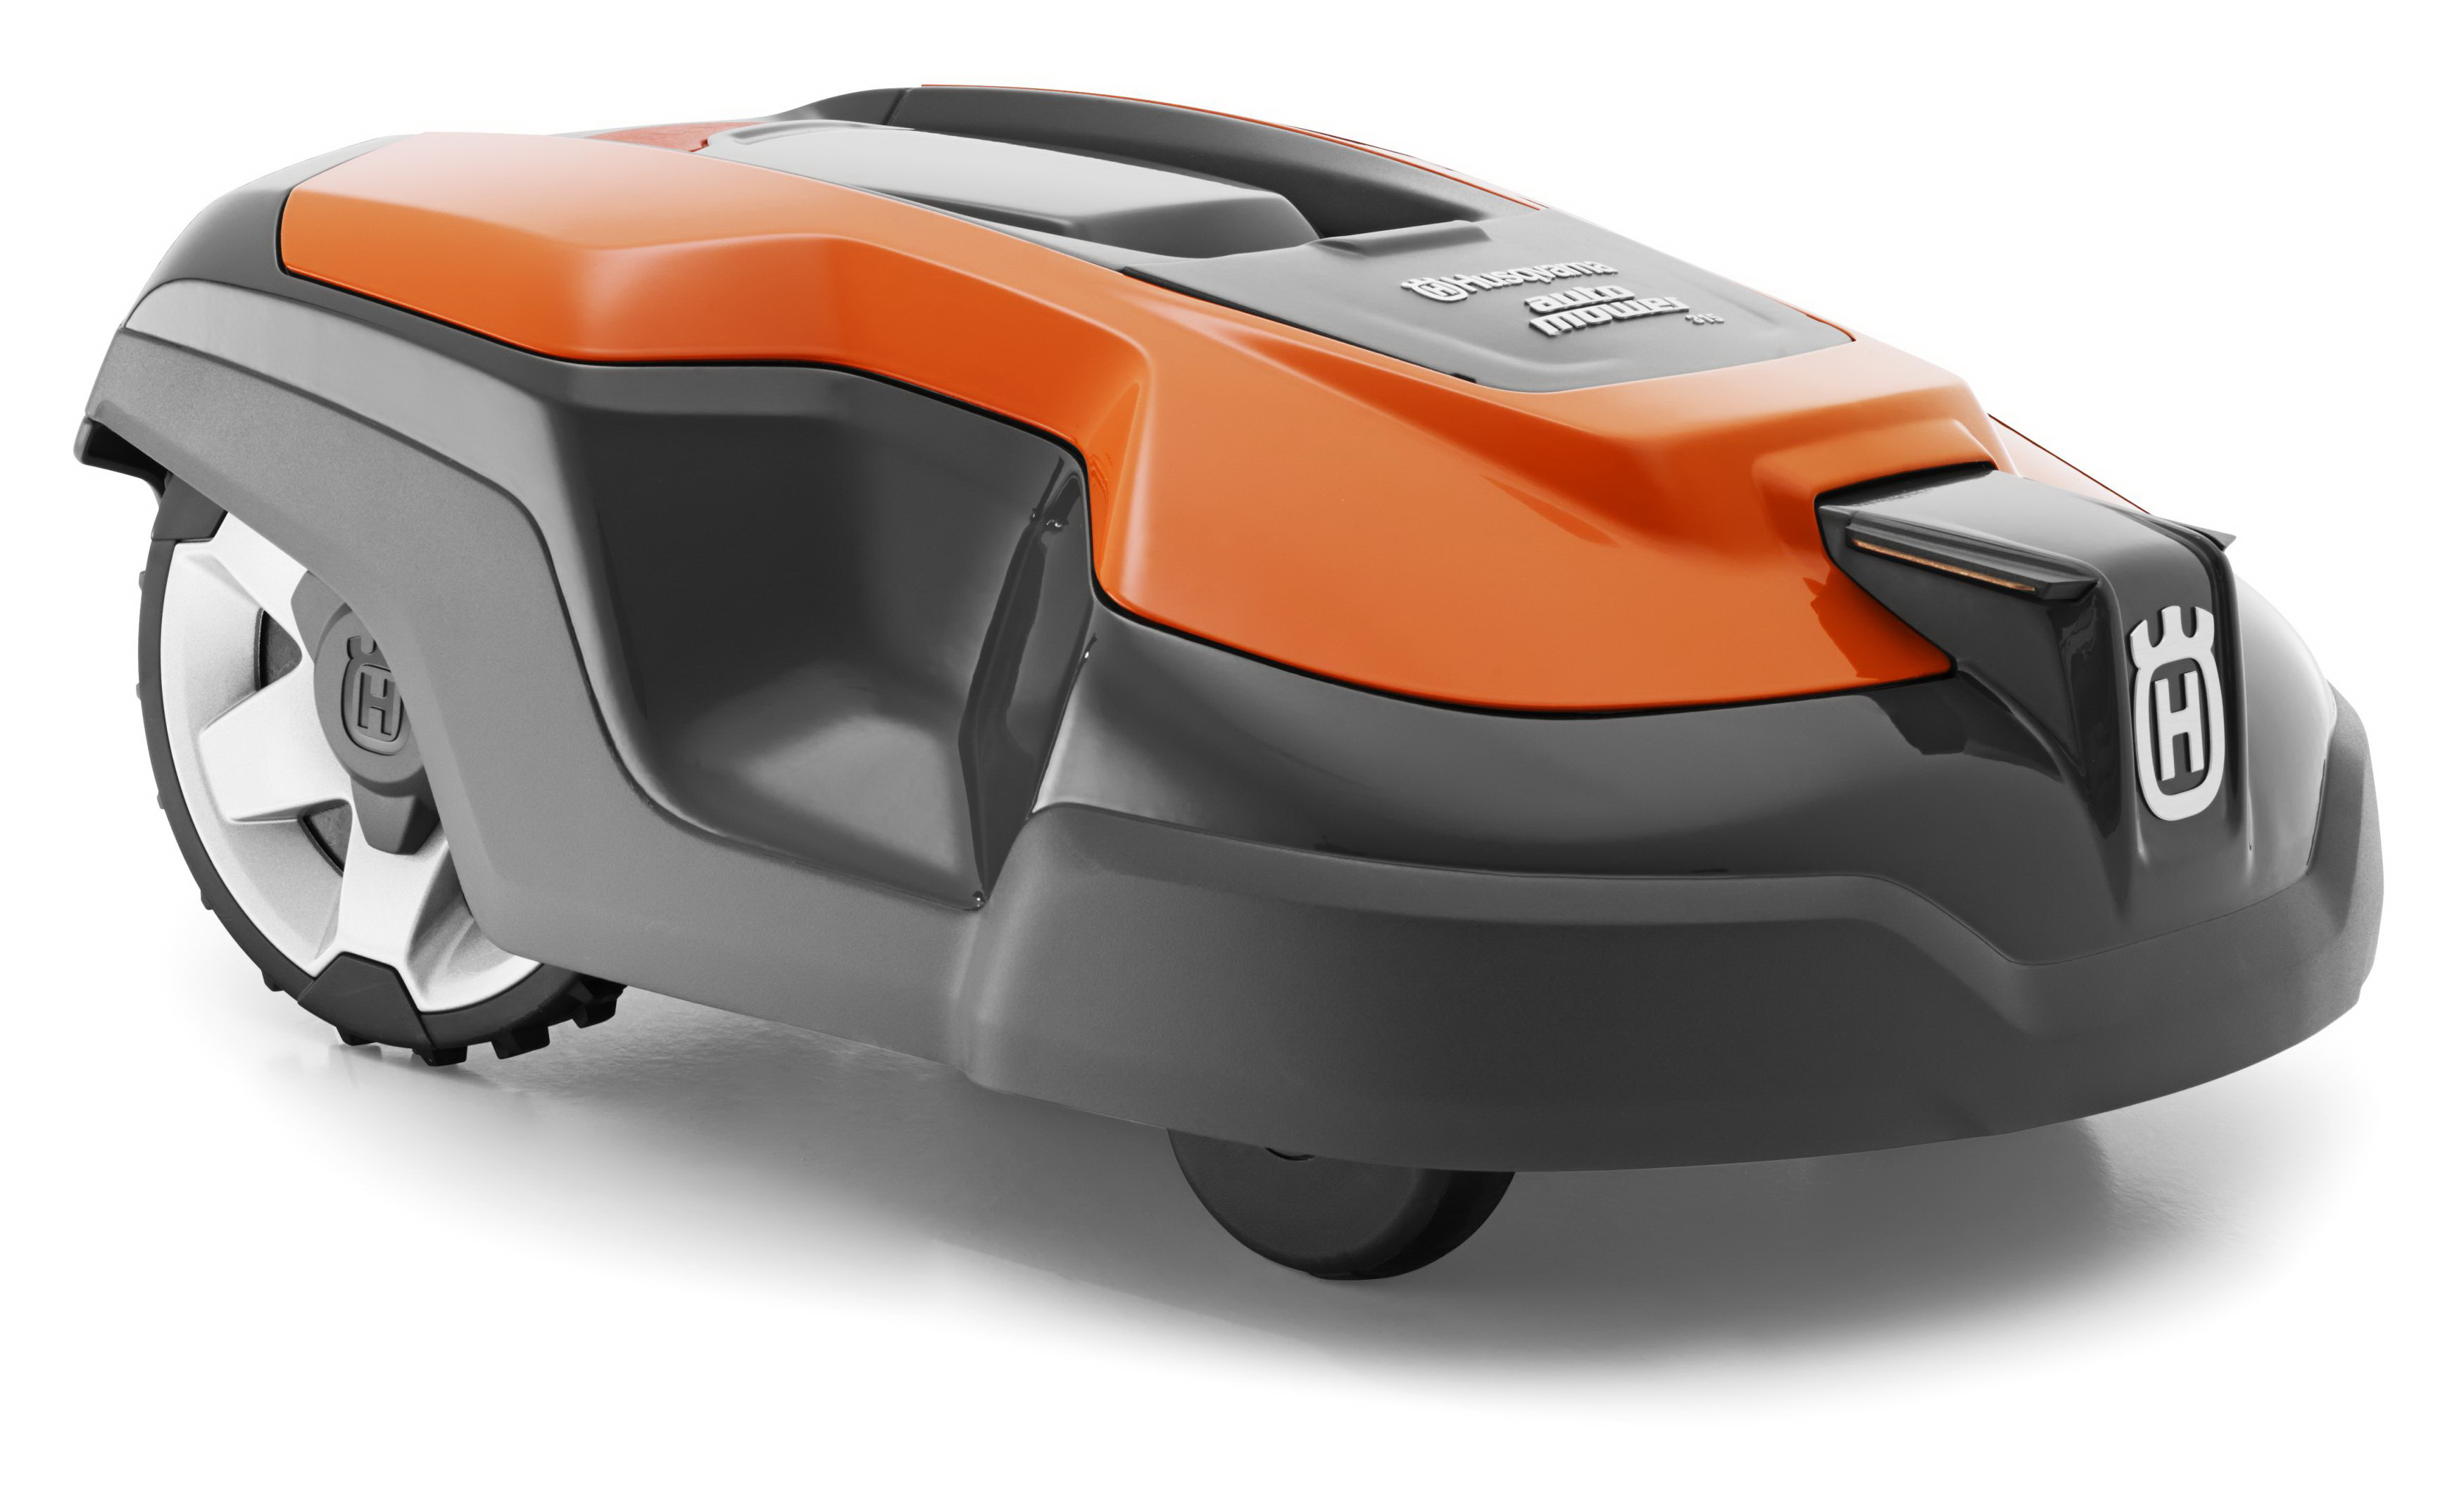 husqvarna automower 310 m hroboter mit bluetooth neuheit. Black Bedroom Furniture Sets. Home Design Ideas